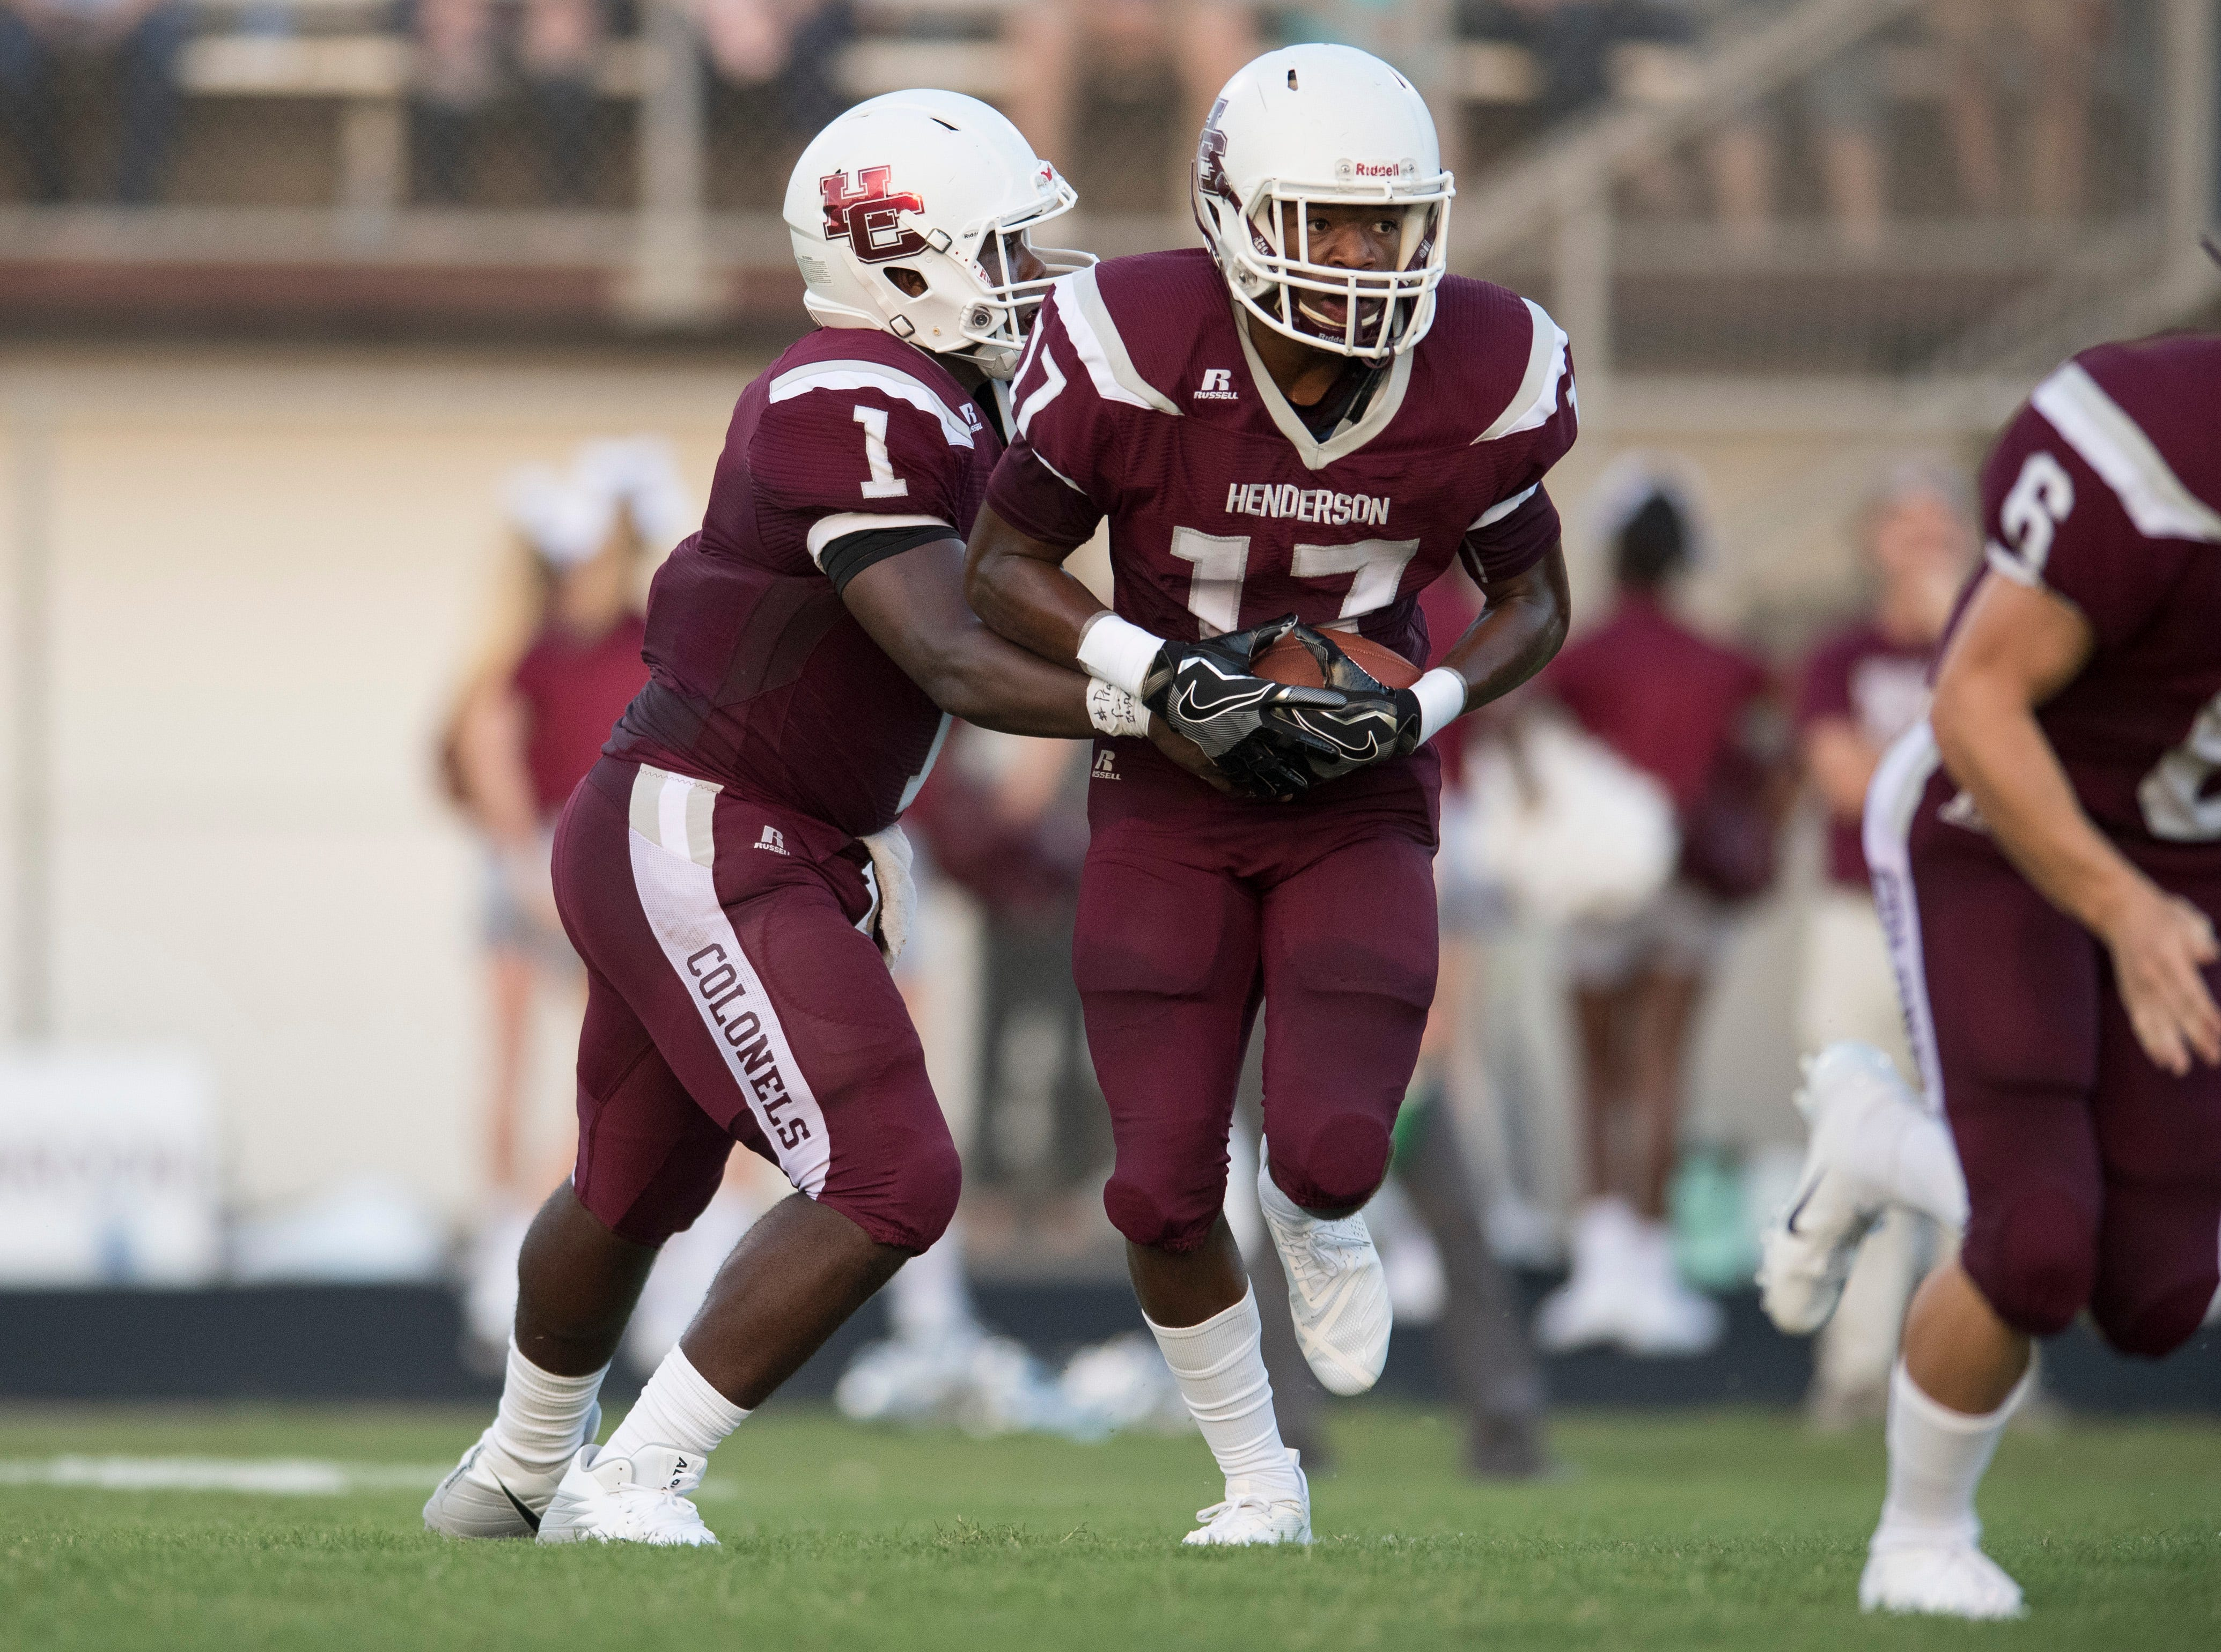 Henderson's Skip Patterson (1)  hands off the ball to HendersonÕs Isaiah Easley (17) during the Reitz vs Henderson County football game Colonels Stadium Friday, August 17, 2018.  The Panthers defeated the Colonels 41-35 in the season opening game.